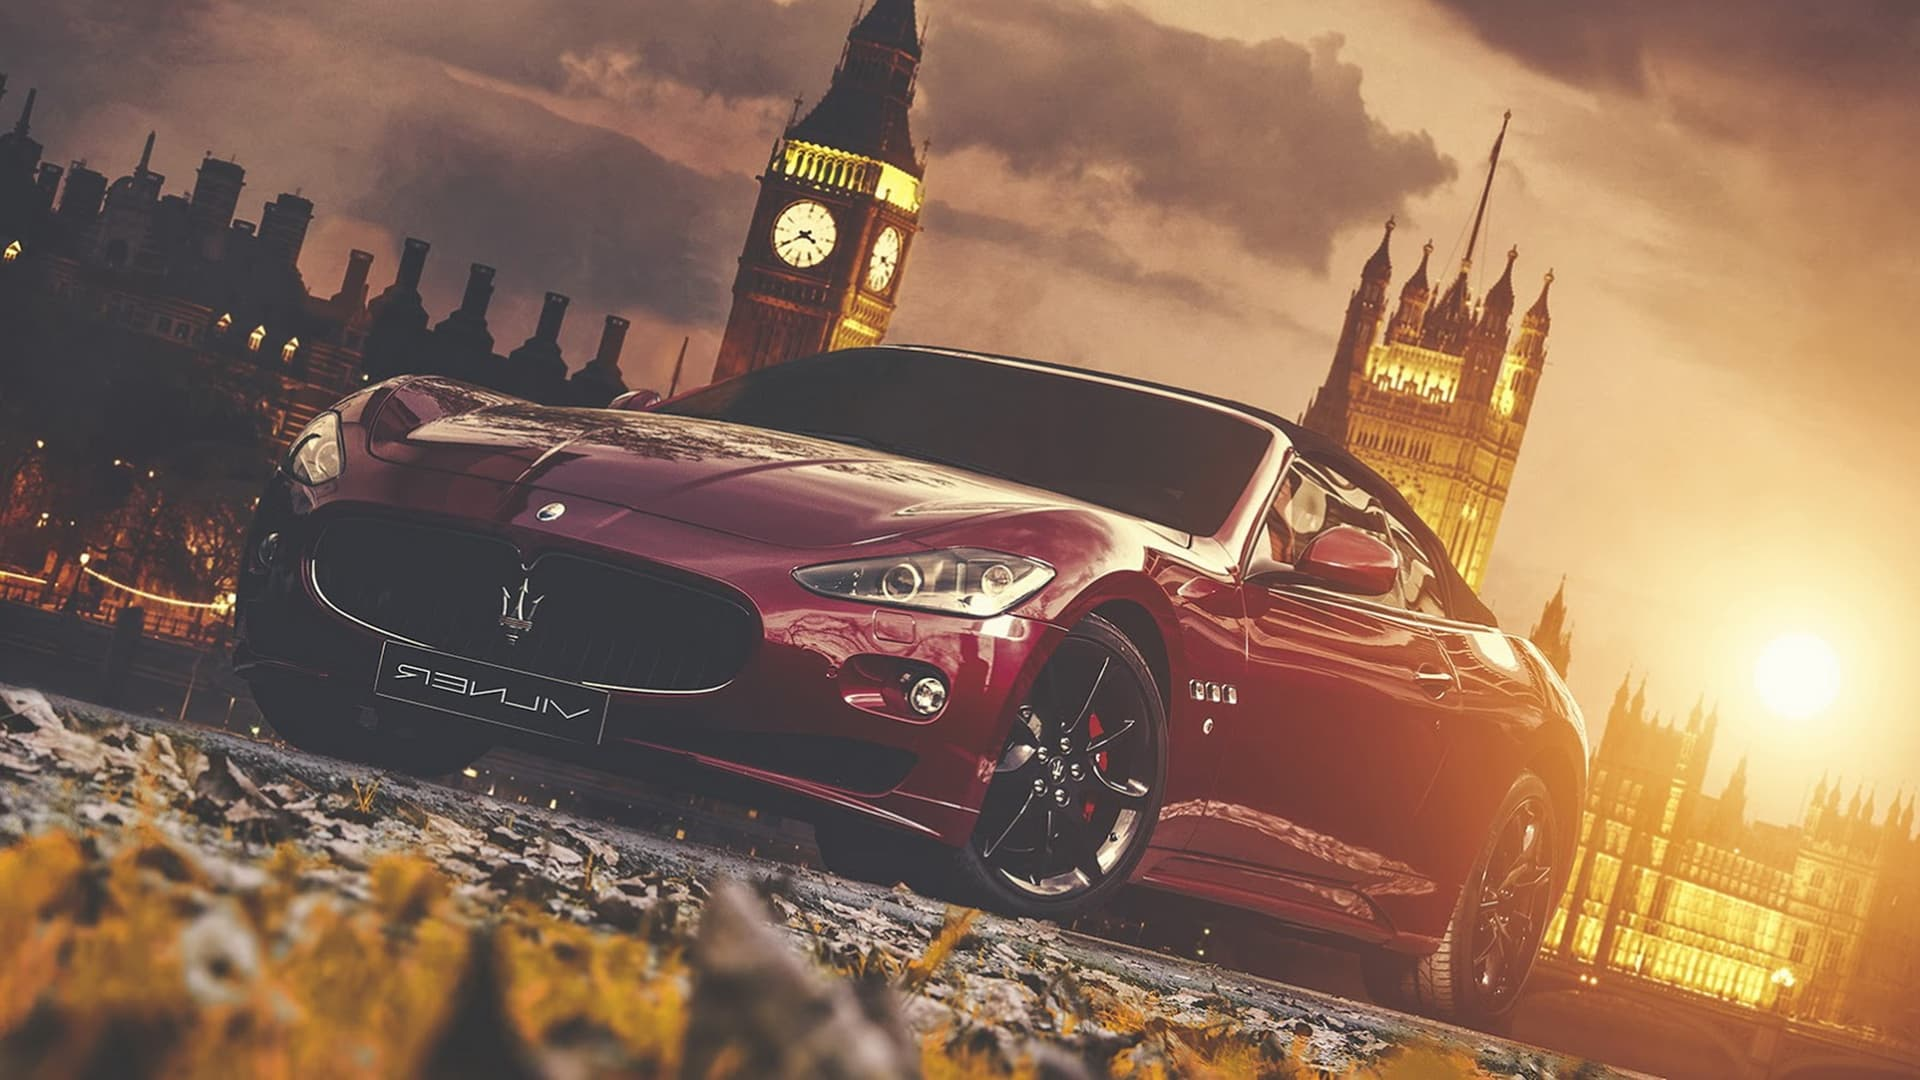 2015 Maserati Quattroporte >> 30+ Maserati GranTurismo wallpapers High Resolution Download